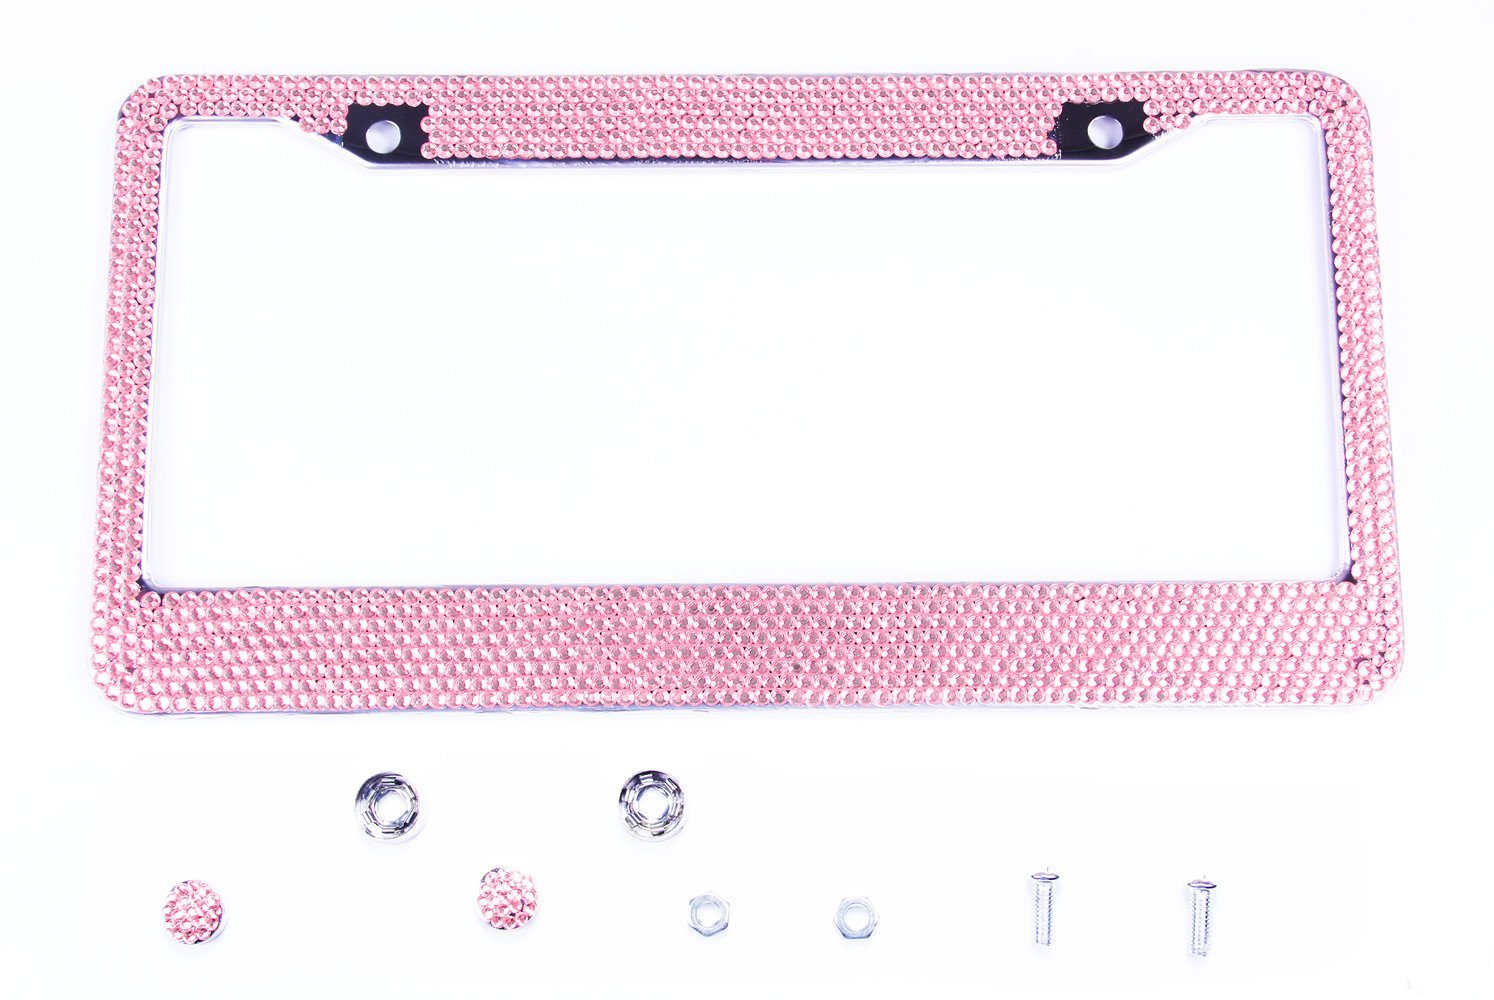 License Plate Frame Pink License Plate Frame 2 Pcs 4 Holes Matte Aluminum Frame with Chrome Screw Caps for US Vehicles,Unique Gift for Women Girls YOU